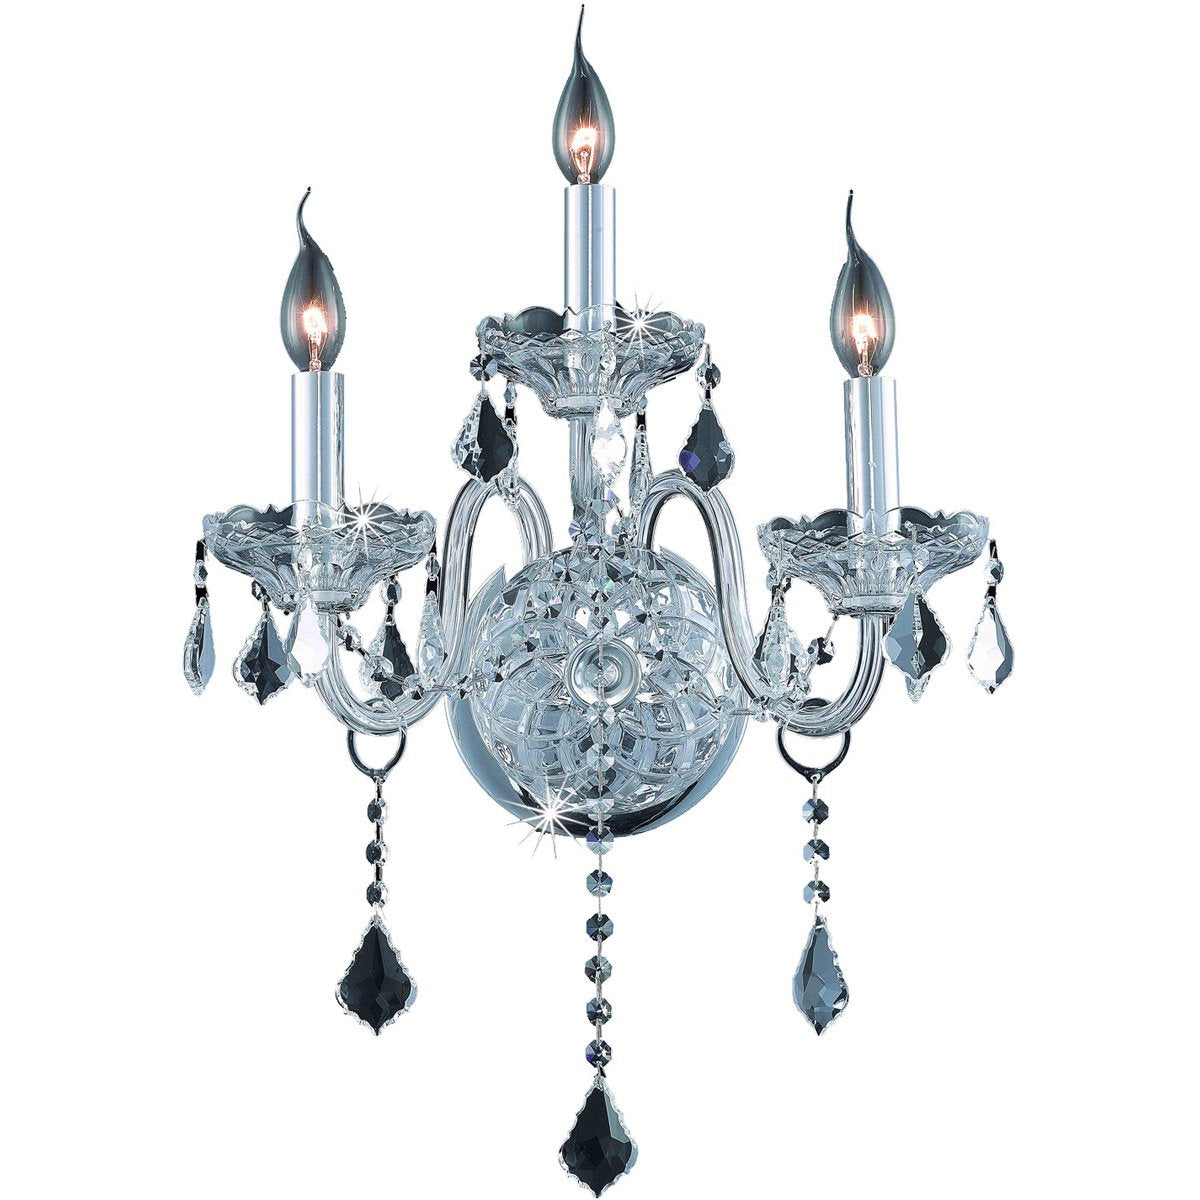 Verona 14 Crystal Wall Sconce With 3 Lights - Chrome Finish And Clear / Spectra Swarovski Crystal Wall Sconce